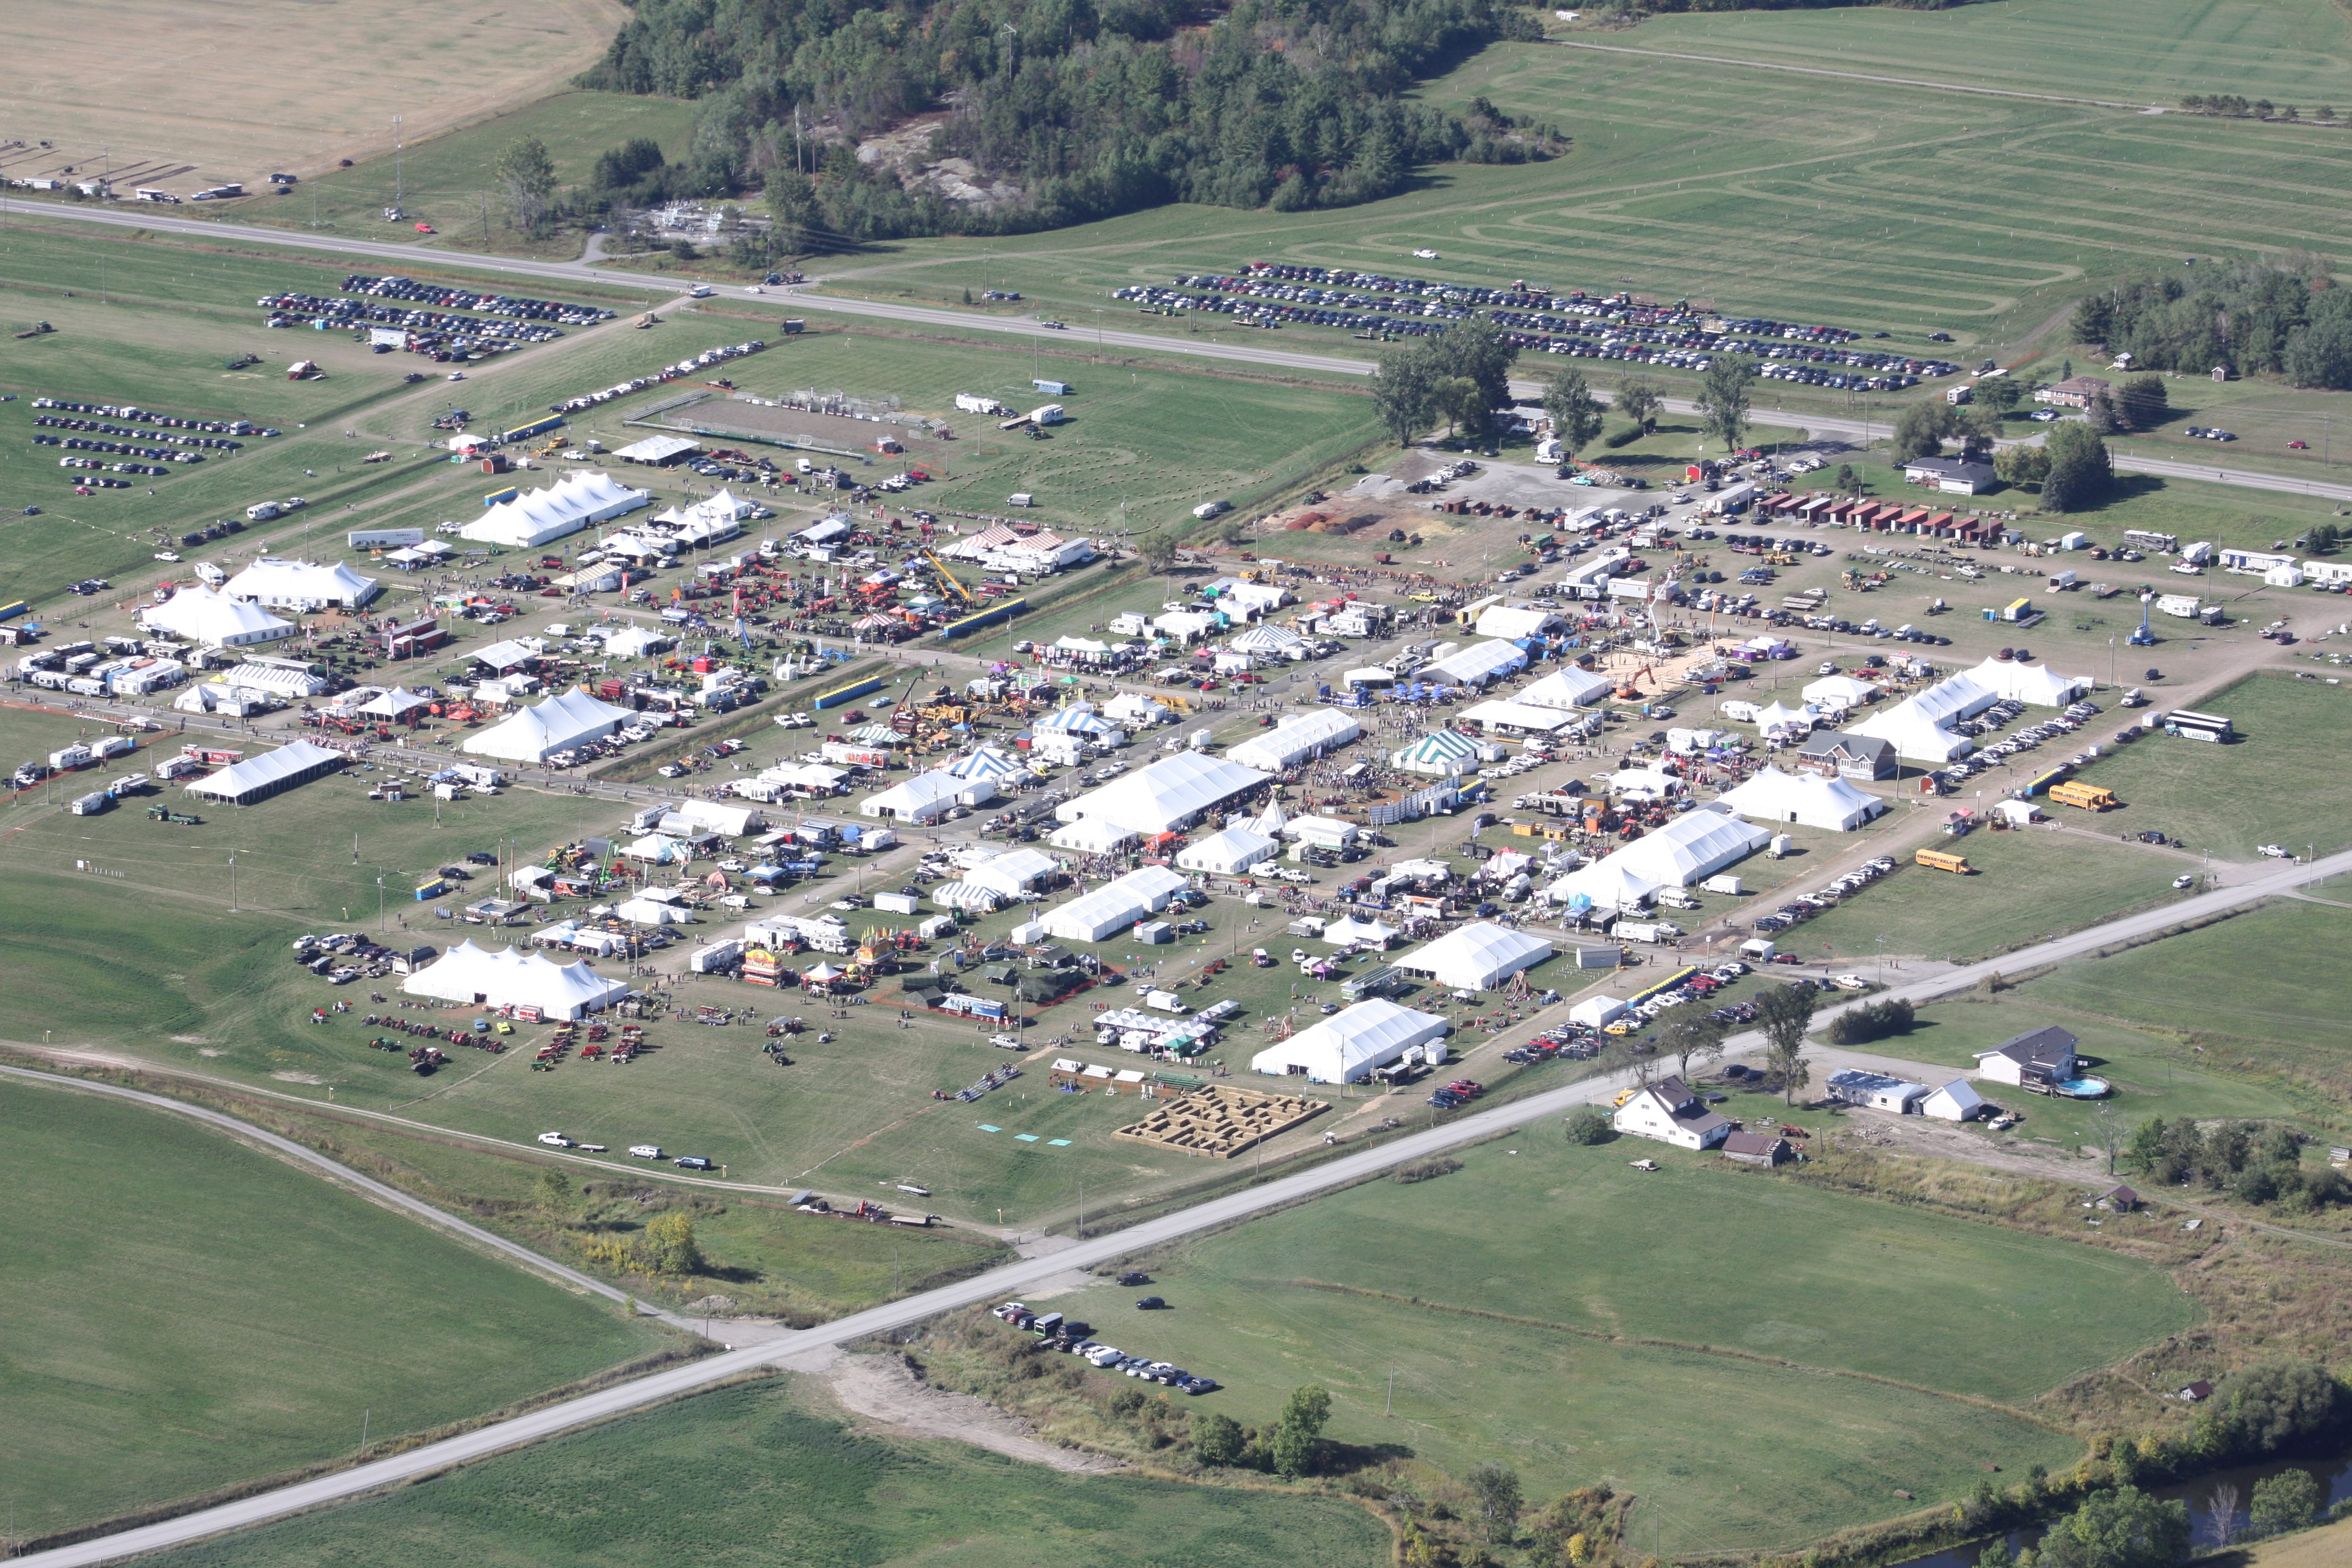 Aerial photo of IPM 2019 Tented City